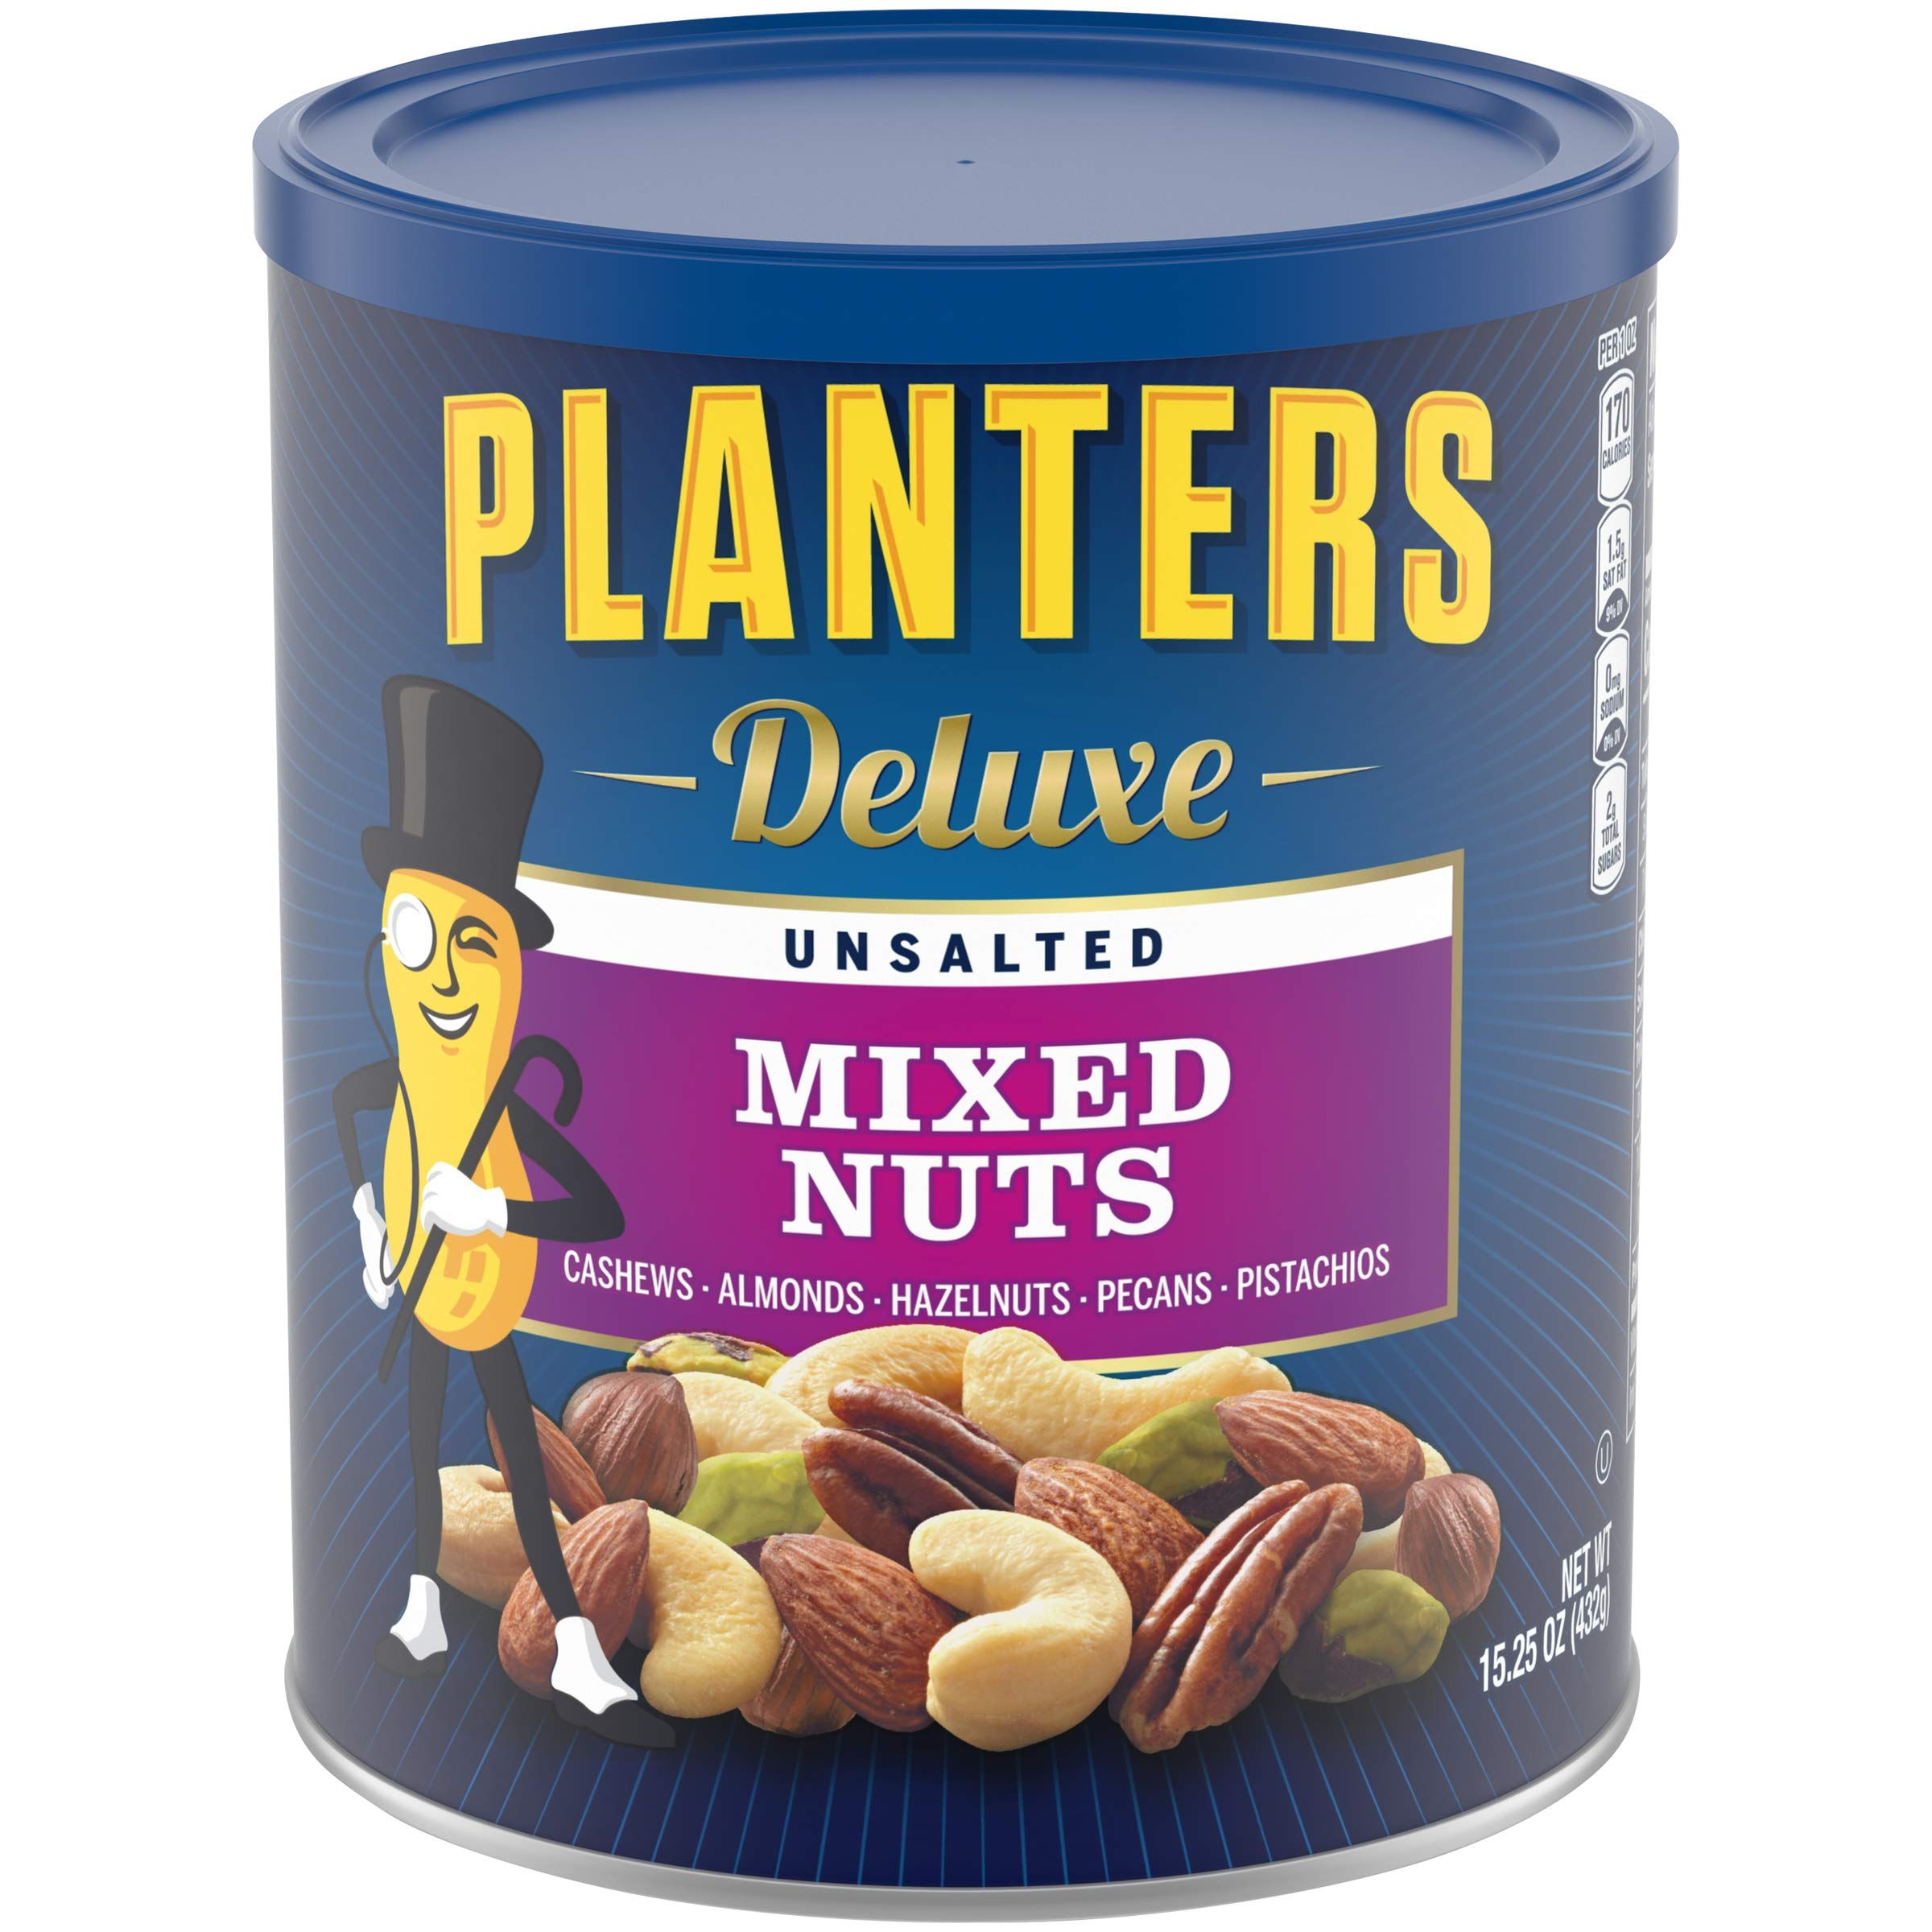 Planters Deluxe Unsalted Mixed Nuts (15.25 oz Canister) Variety Mixed Nuts with Cashews, Almonds, Hazelnuts, Pecans and Pistachios